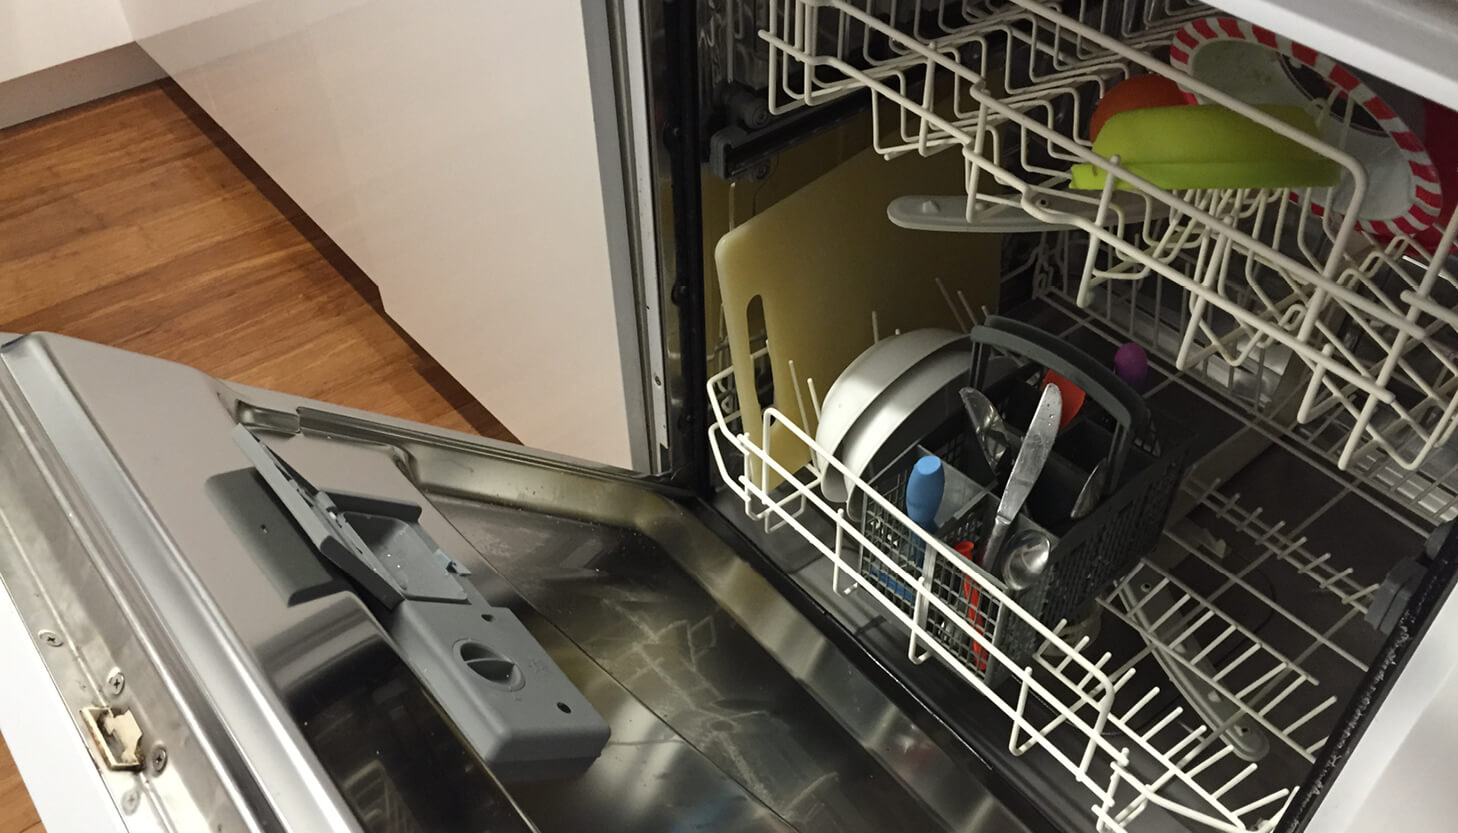 How to clean and deodorise your dishwasher